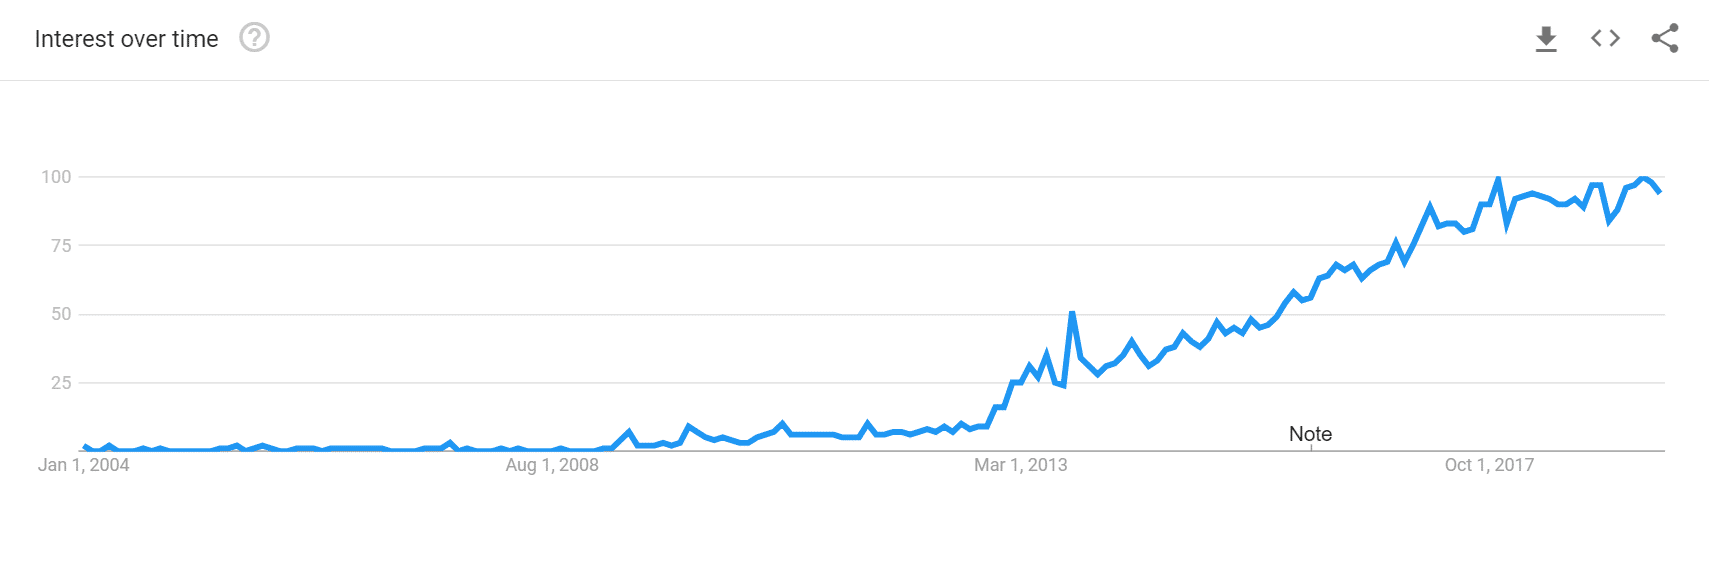 Interest in MariaDB over time